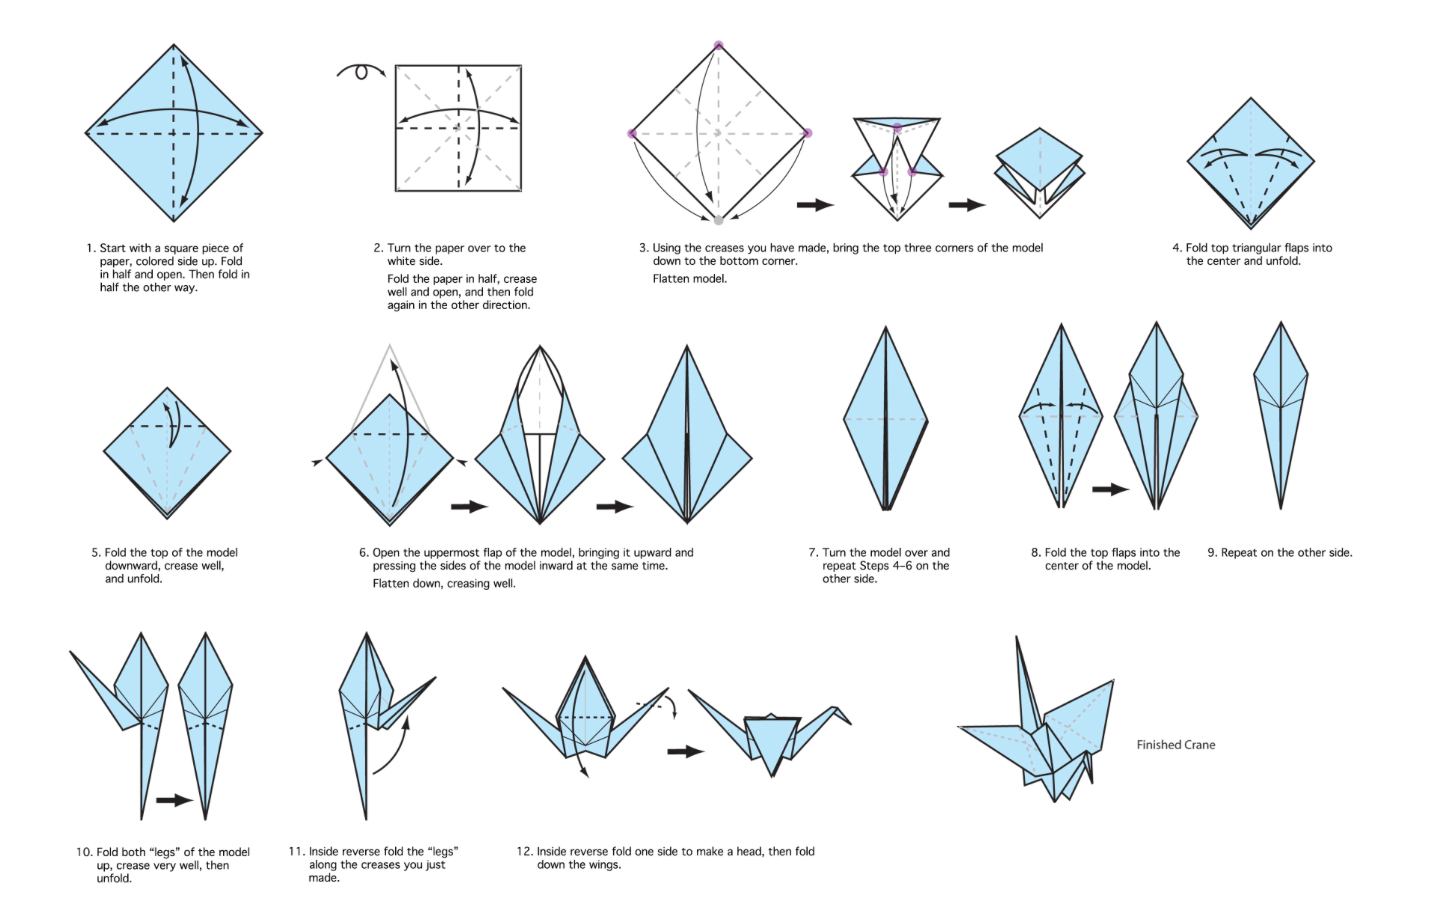 How To Make A Bird With Origami Cranes Easy Crafting